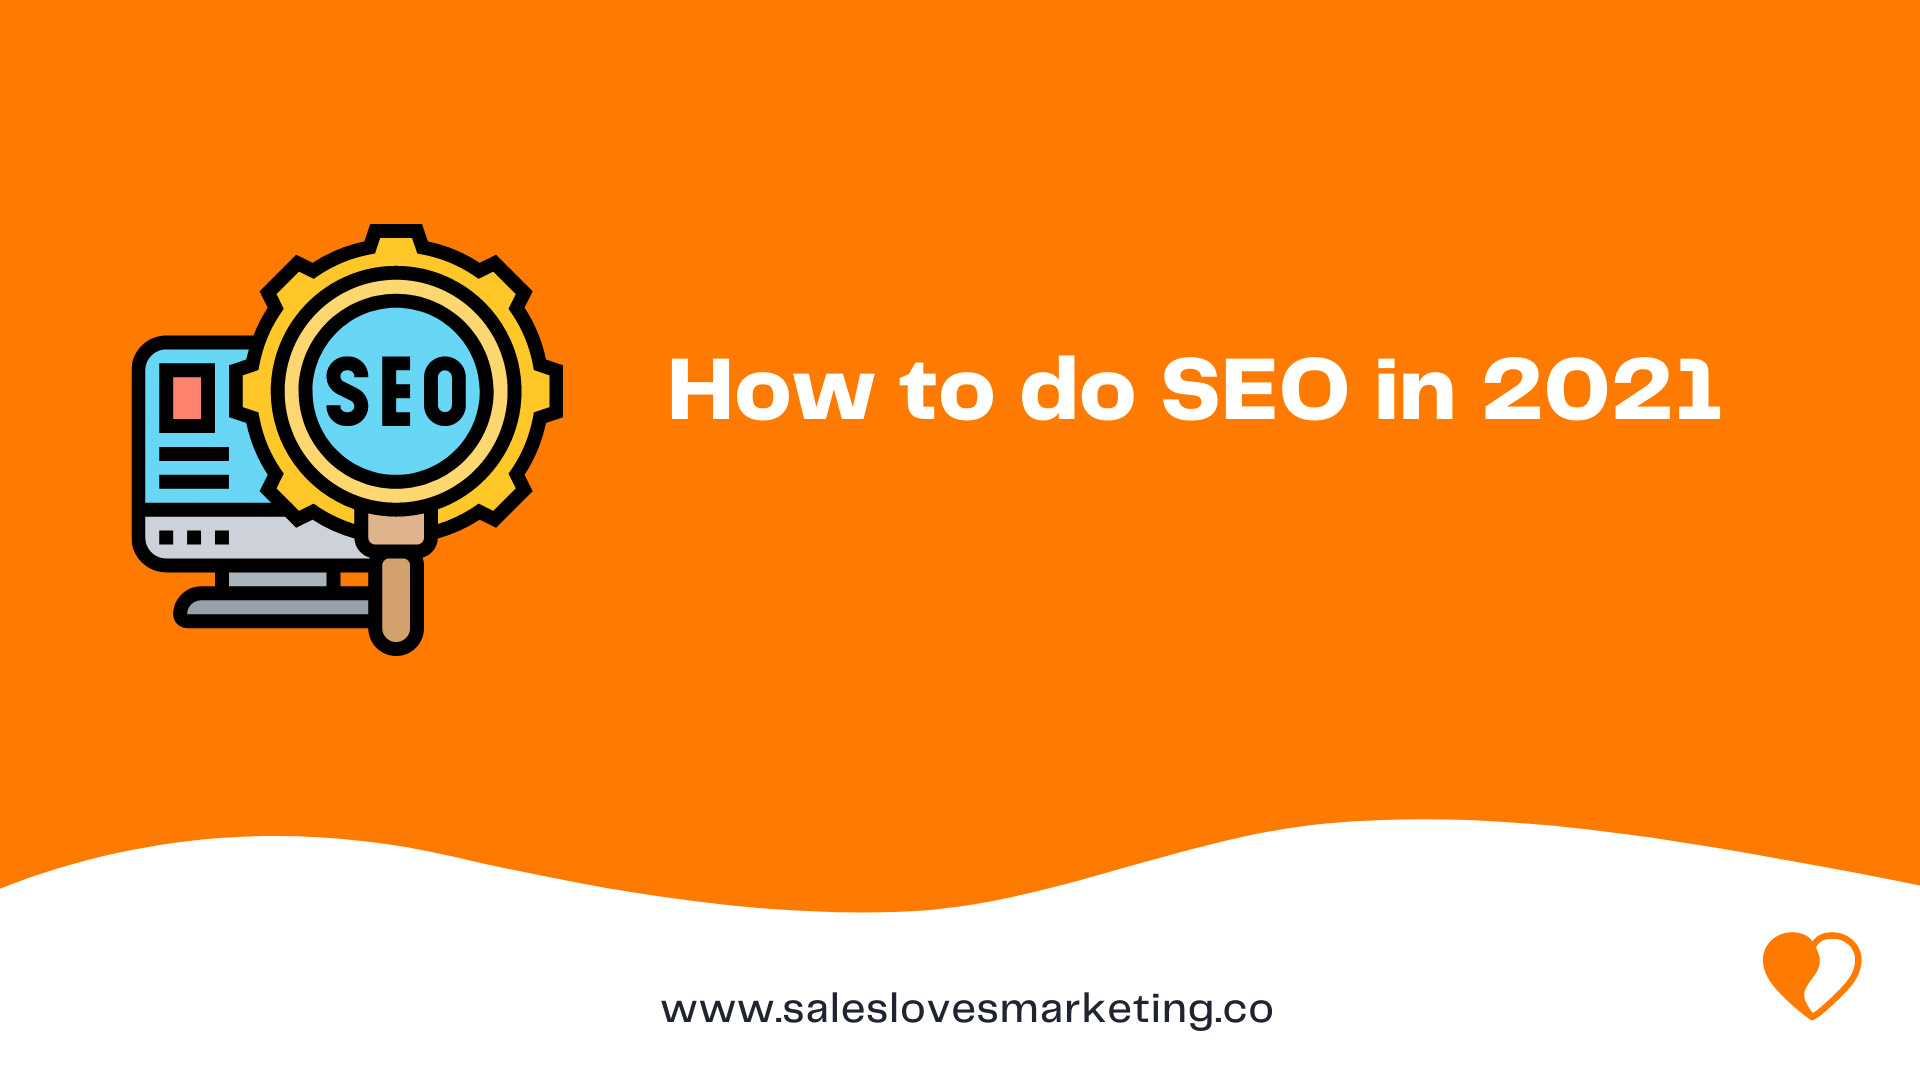 How to do SEO in 2021